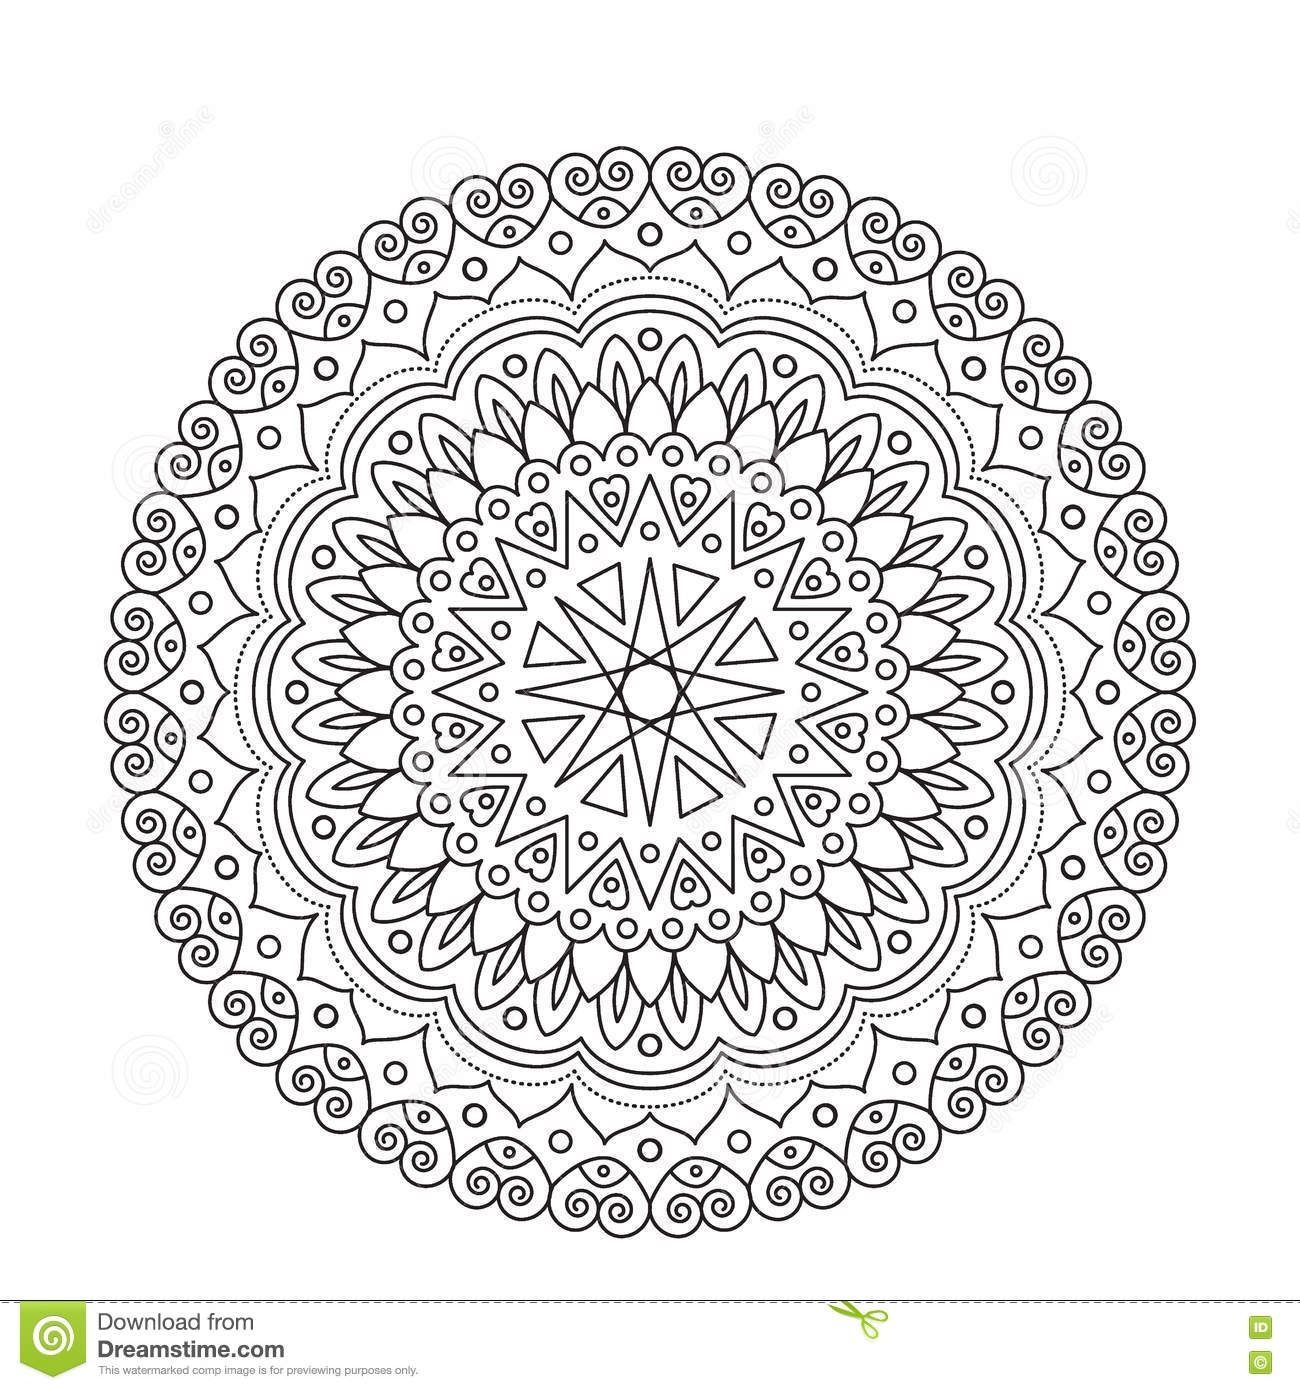 flower garden coloring pages - stock illustration coloring book mandala circle lace ornament round ornamental pattern black white design vector page adults image